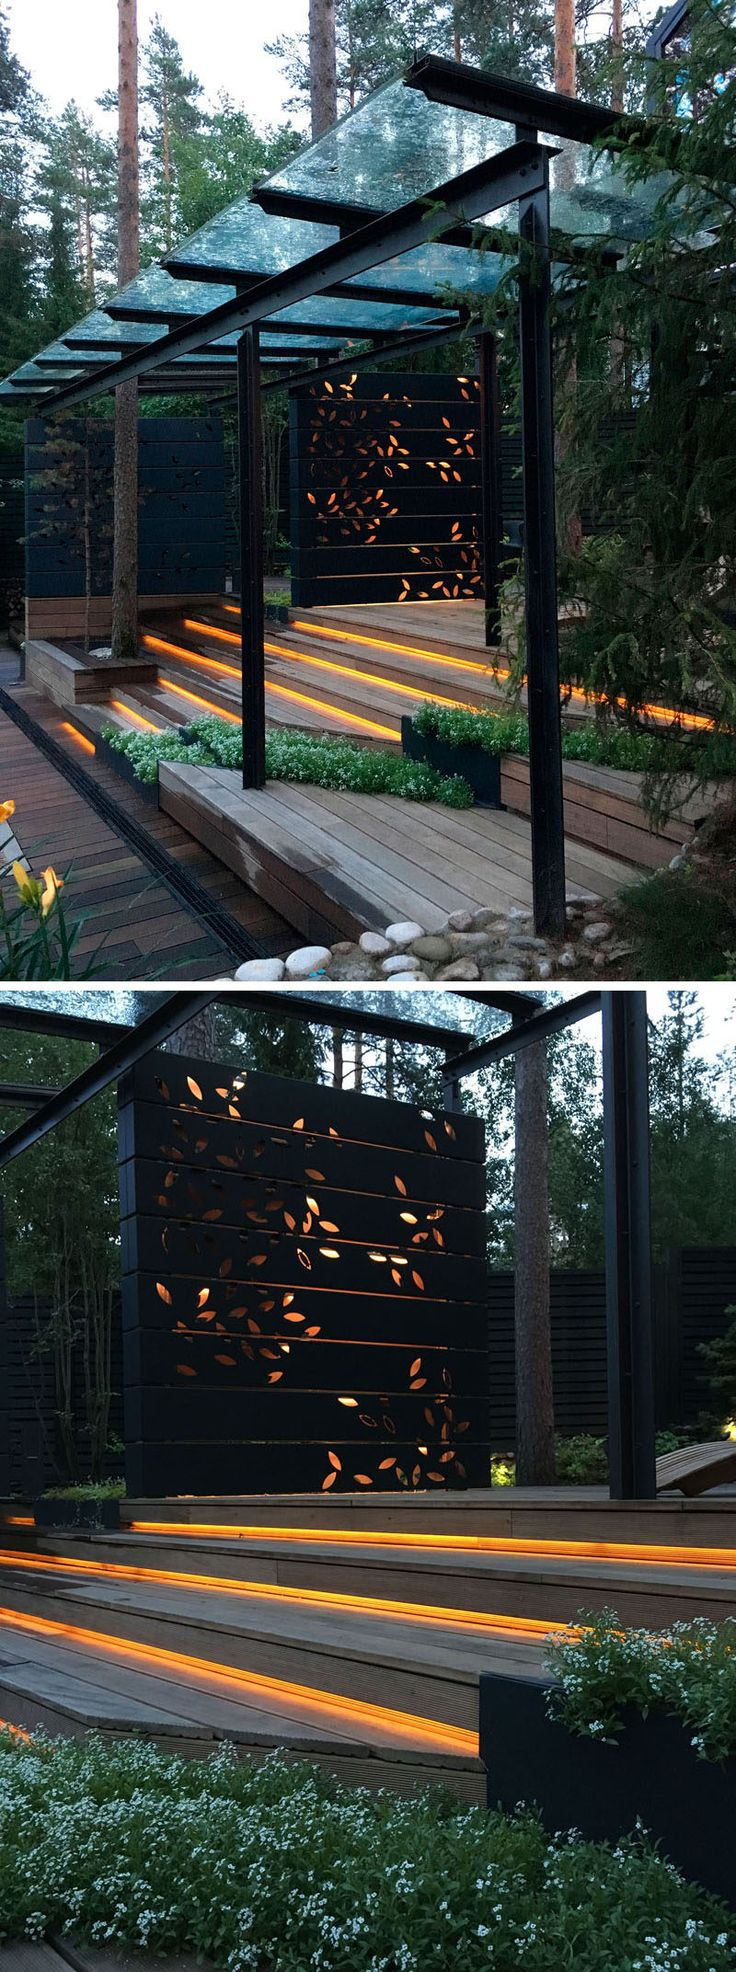 This gym has an landscaped outdoor area with hidden lighting under the steps, built-in planters, and a decorative screen that has an artistic leaf pattern that lights up.